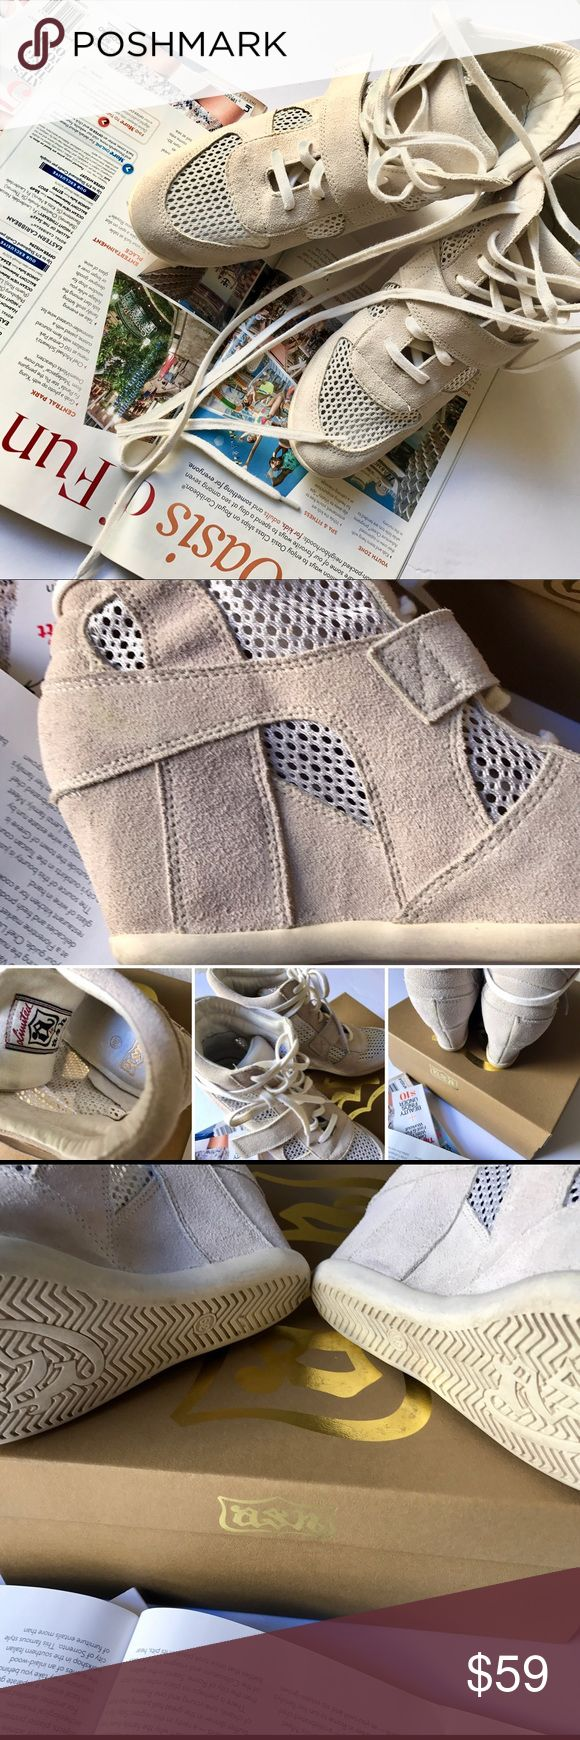 """Ash Bowie Mesh/Suede Sneaker * Ash suede sneaker heel * 4 3/4"""" wedge heel; 1/2"""" pump * lace up front with a strap * beige/of white * lace up front with a strap * round toe * manmade sole * in mint condition ( like a new) * perfect for spring/ summer Ash Shoes Sneakers"""